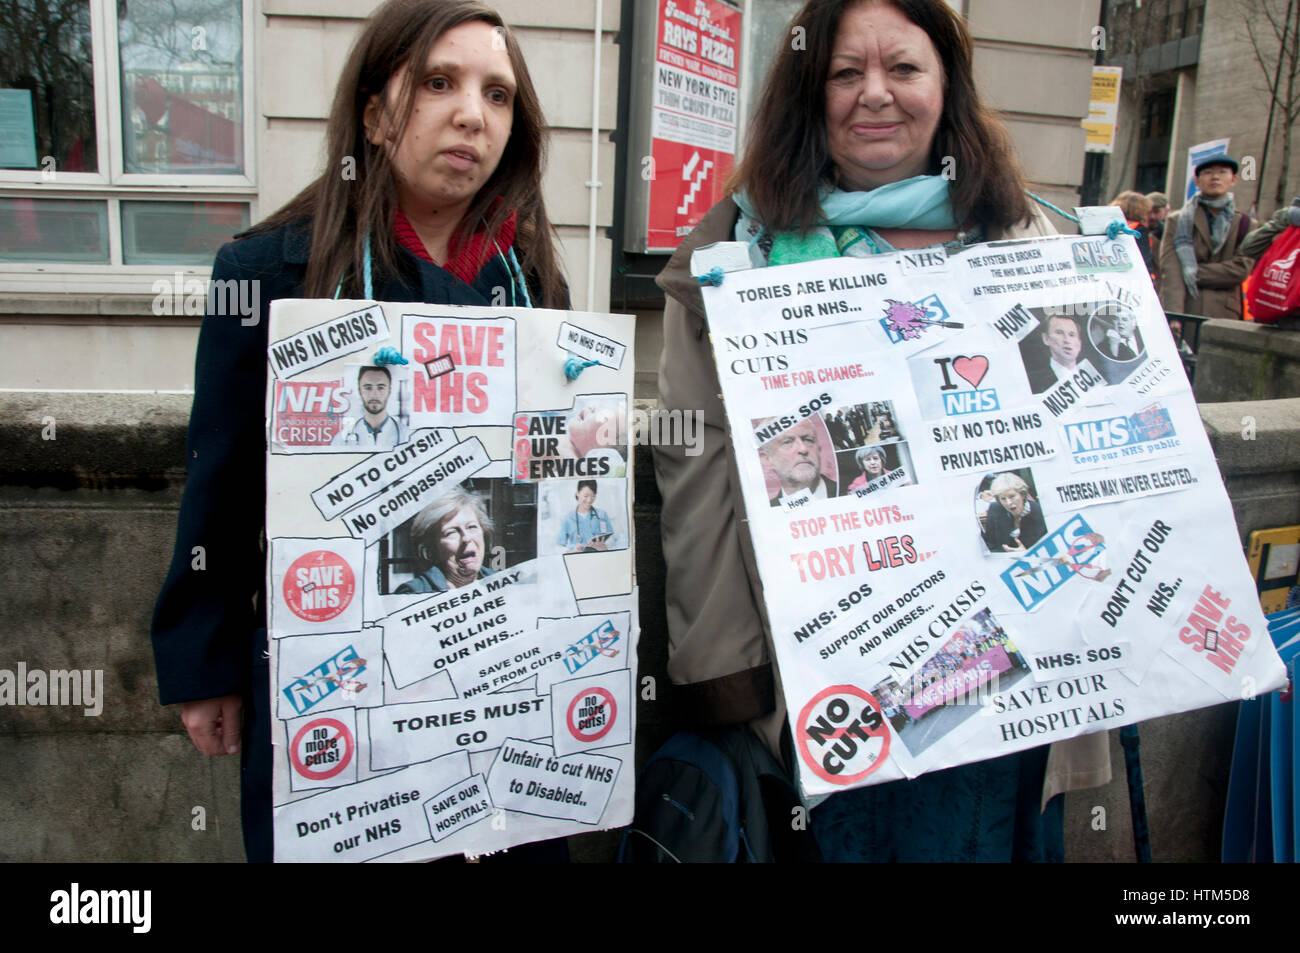 Thousands of health workers and members of the public protested against austerity in the health service.Mother, - Stock Image